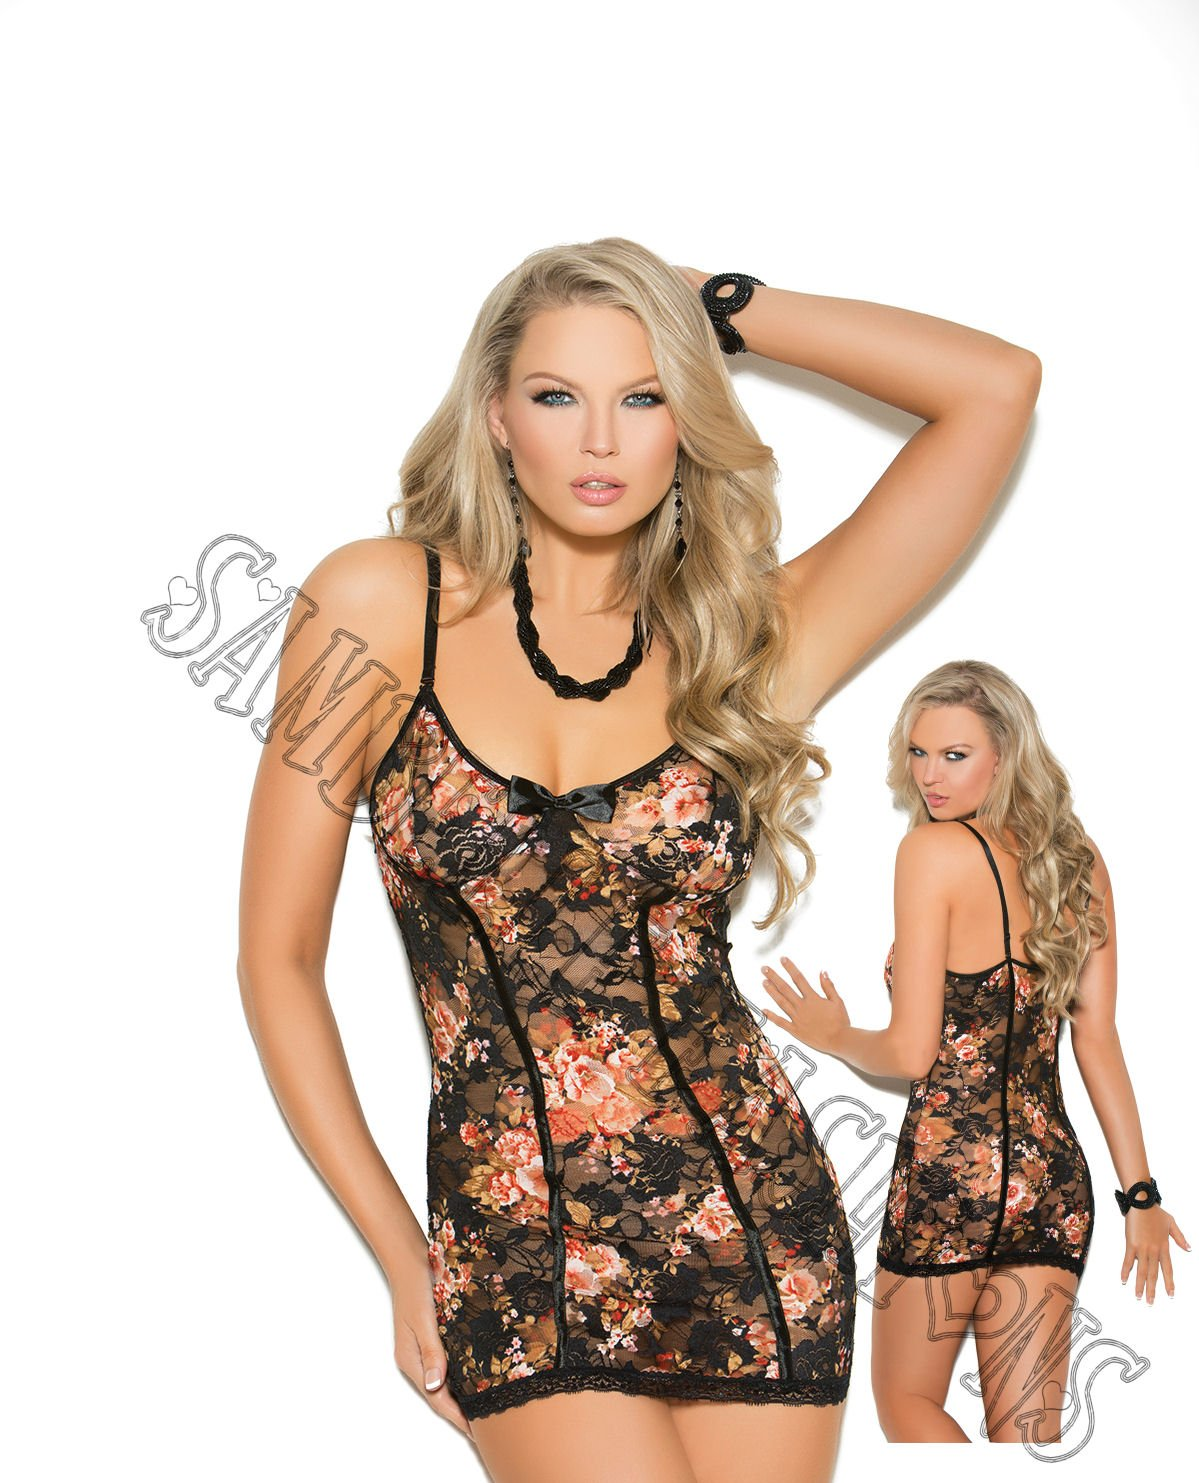 2pc - Floral Print Lace Babydoll w/ Satin Bow & Matching G-String - Large